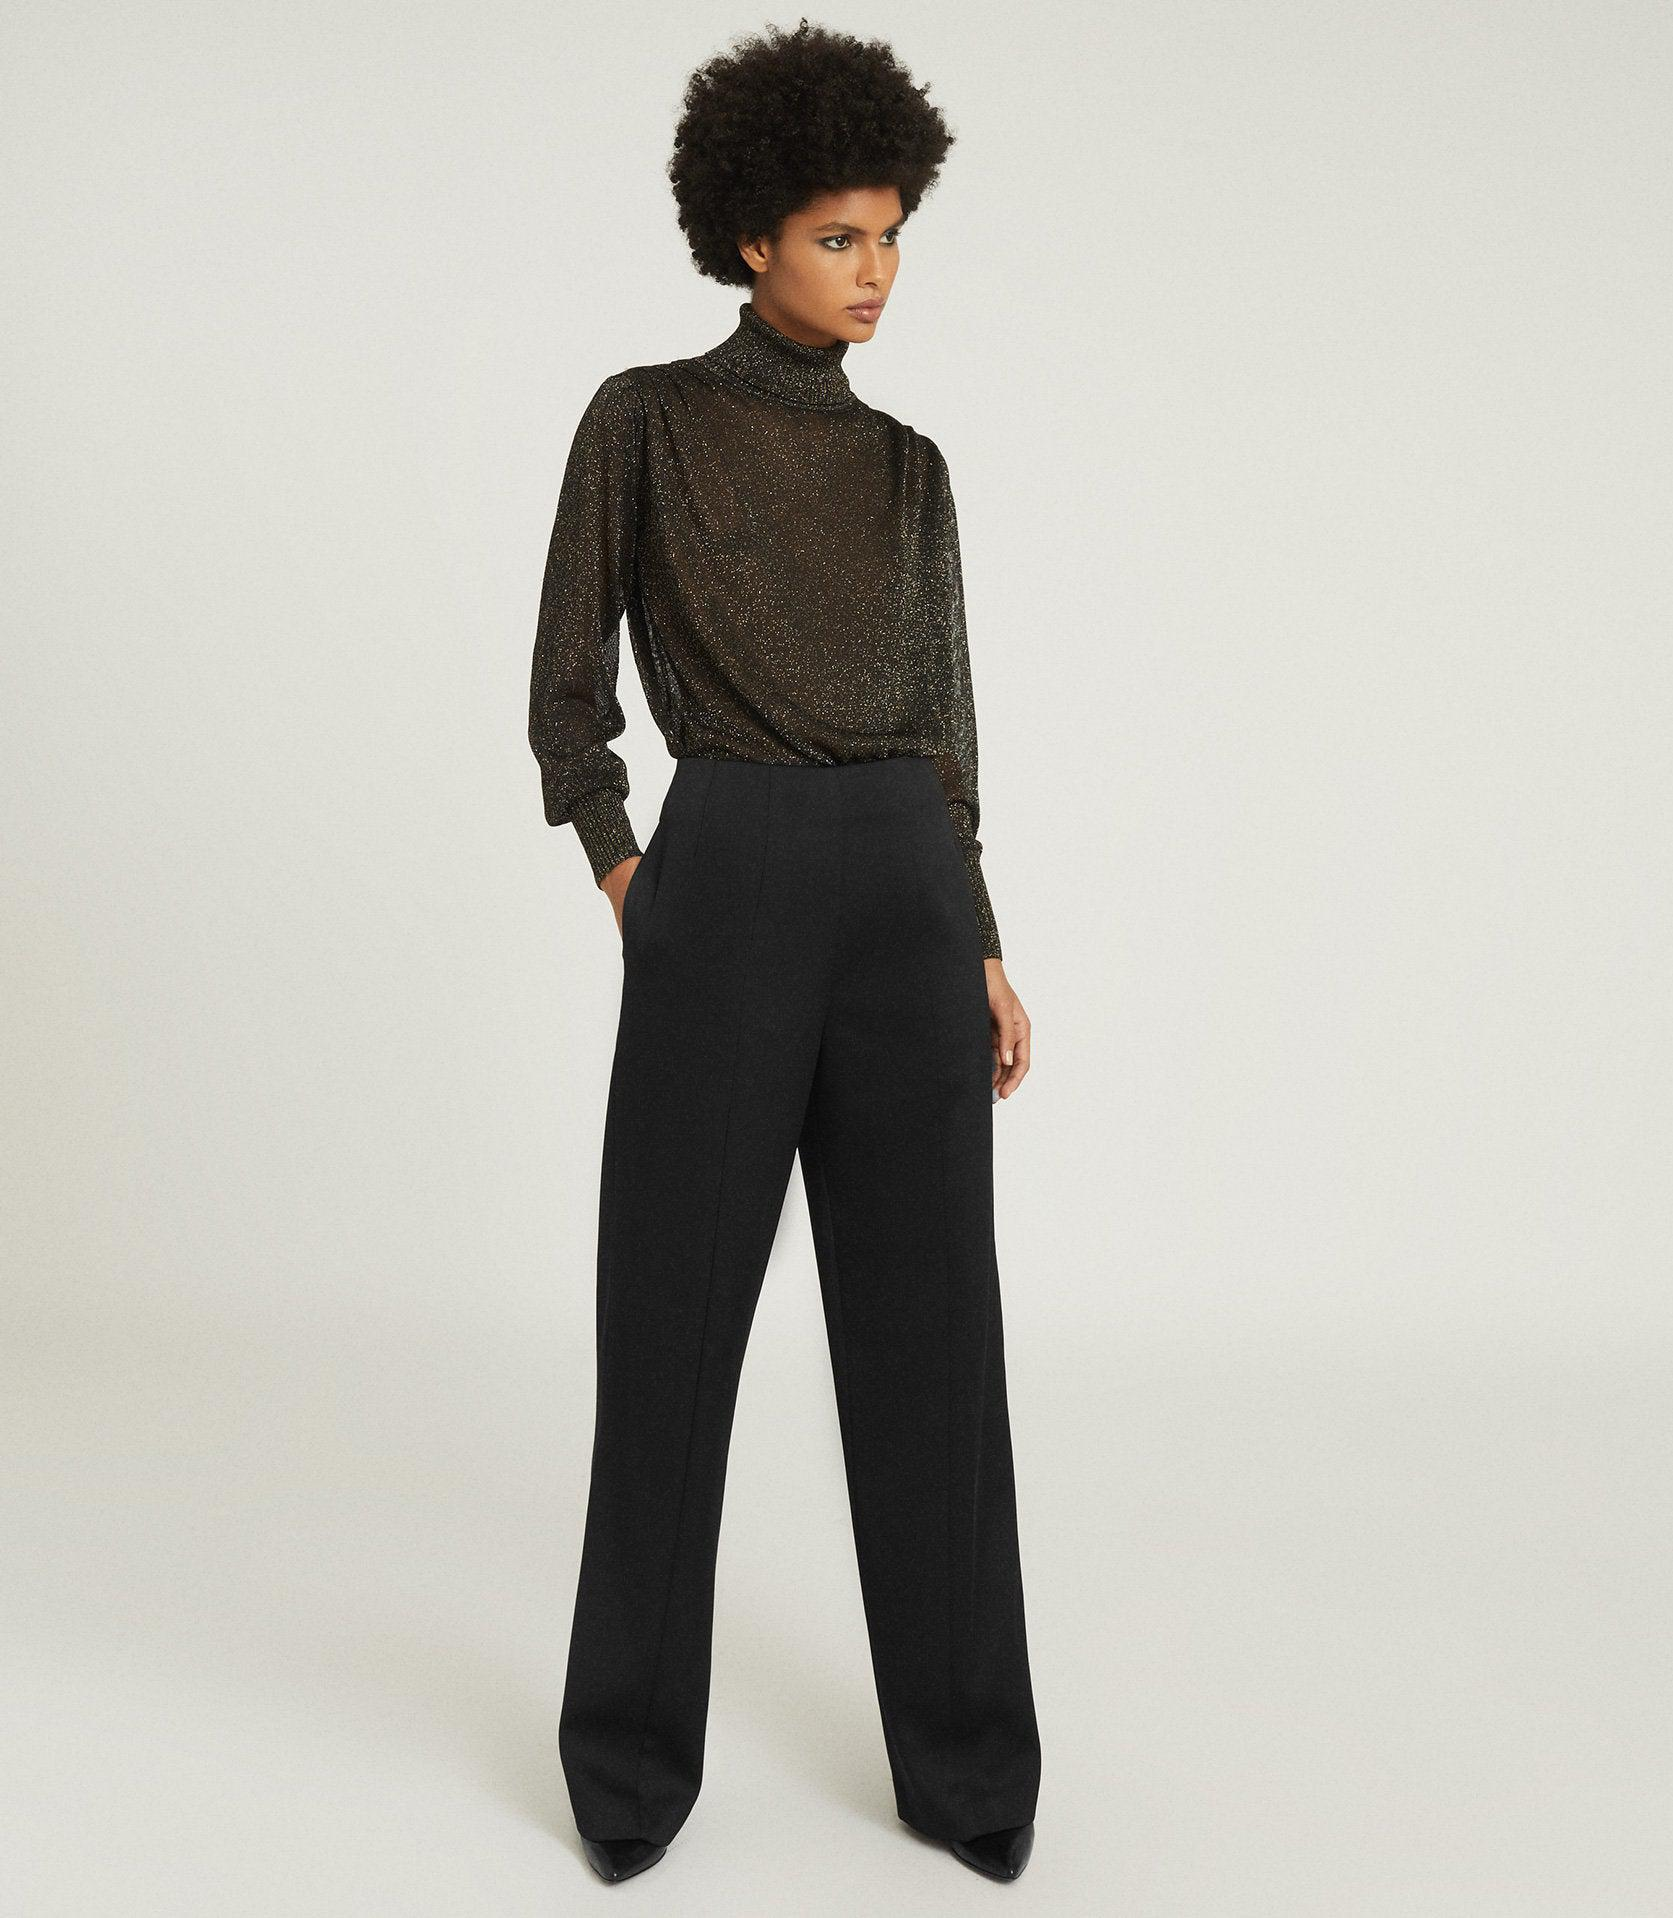 LUISA - WIDE LEG TAILORED TROUSERS